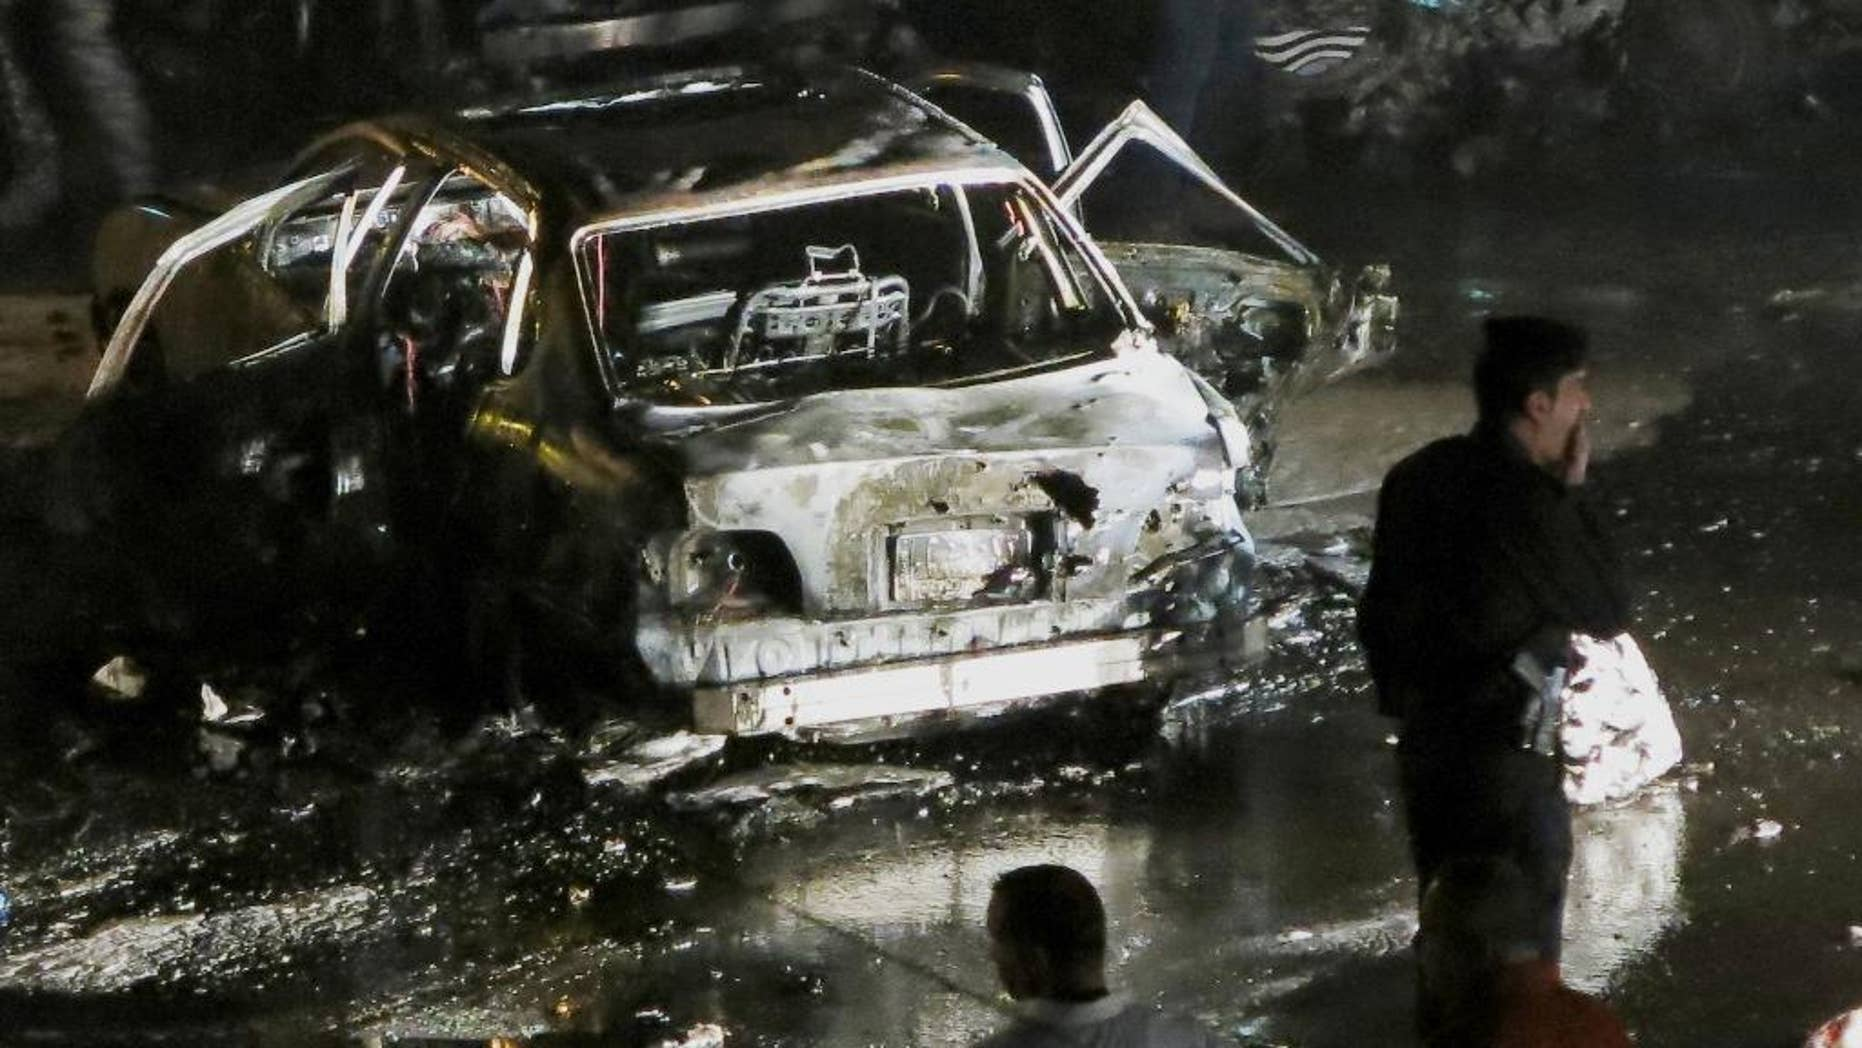 Civilians and security forces gather at the scene of a car bomb explosion in Baghdad's western district of Mansour, Iraq, Monday, April 27, 2015. A series of car bombings targeting busy commercial areas in Iraq's capital left many civilians killed and others wounded, officials said. (AP Photo)